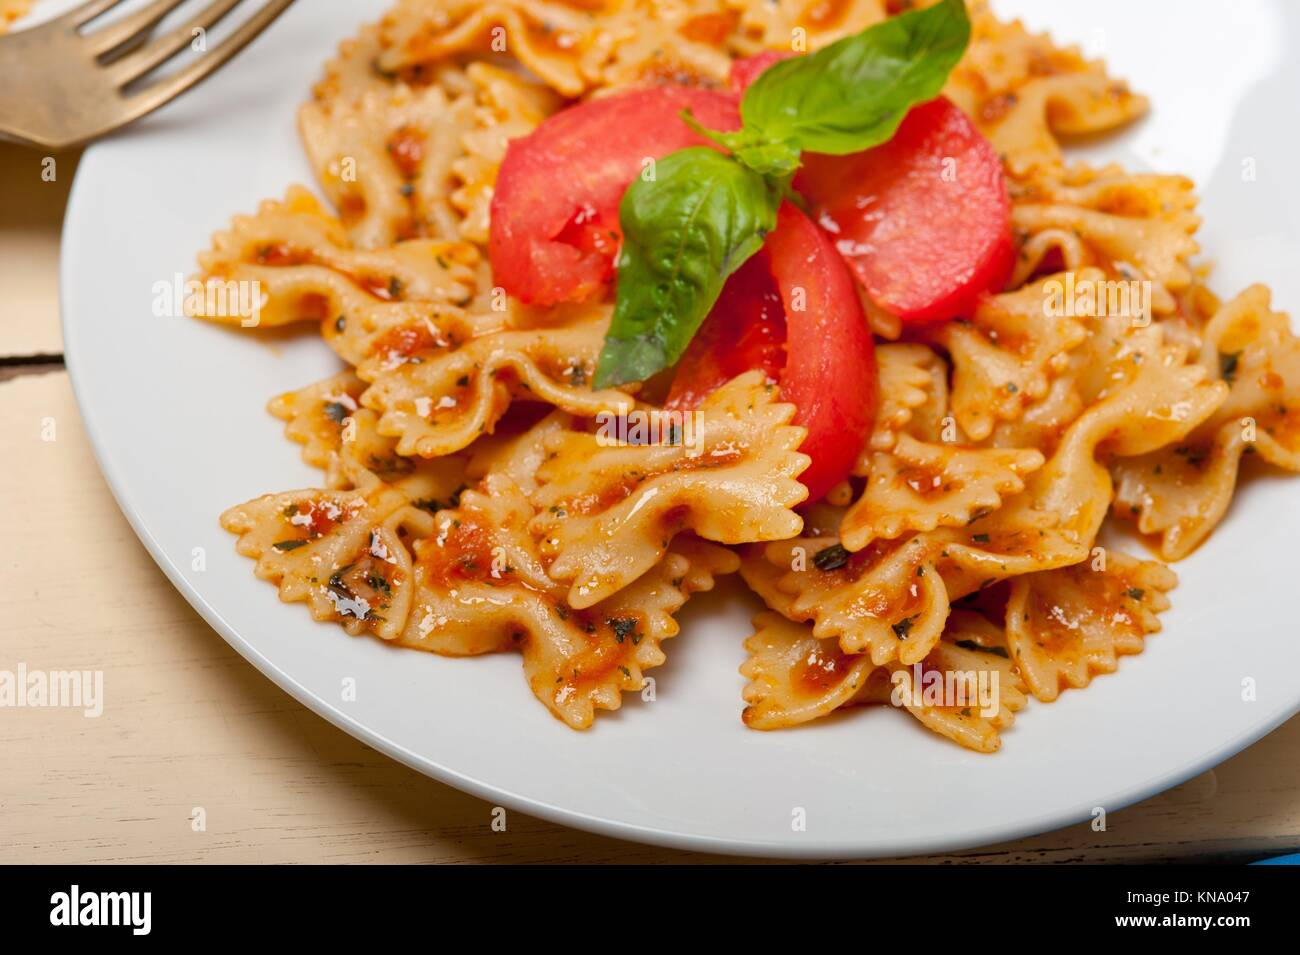 Italian pasta farfalle butterfly bow-tie with tomato basil sauce over white rustic wood table. - Stock Image